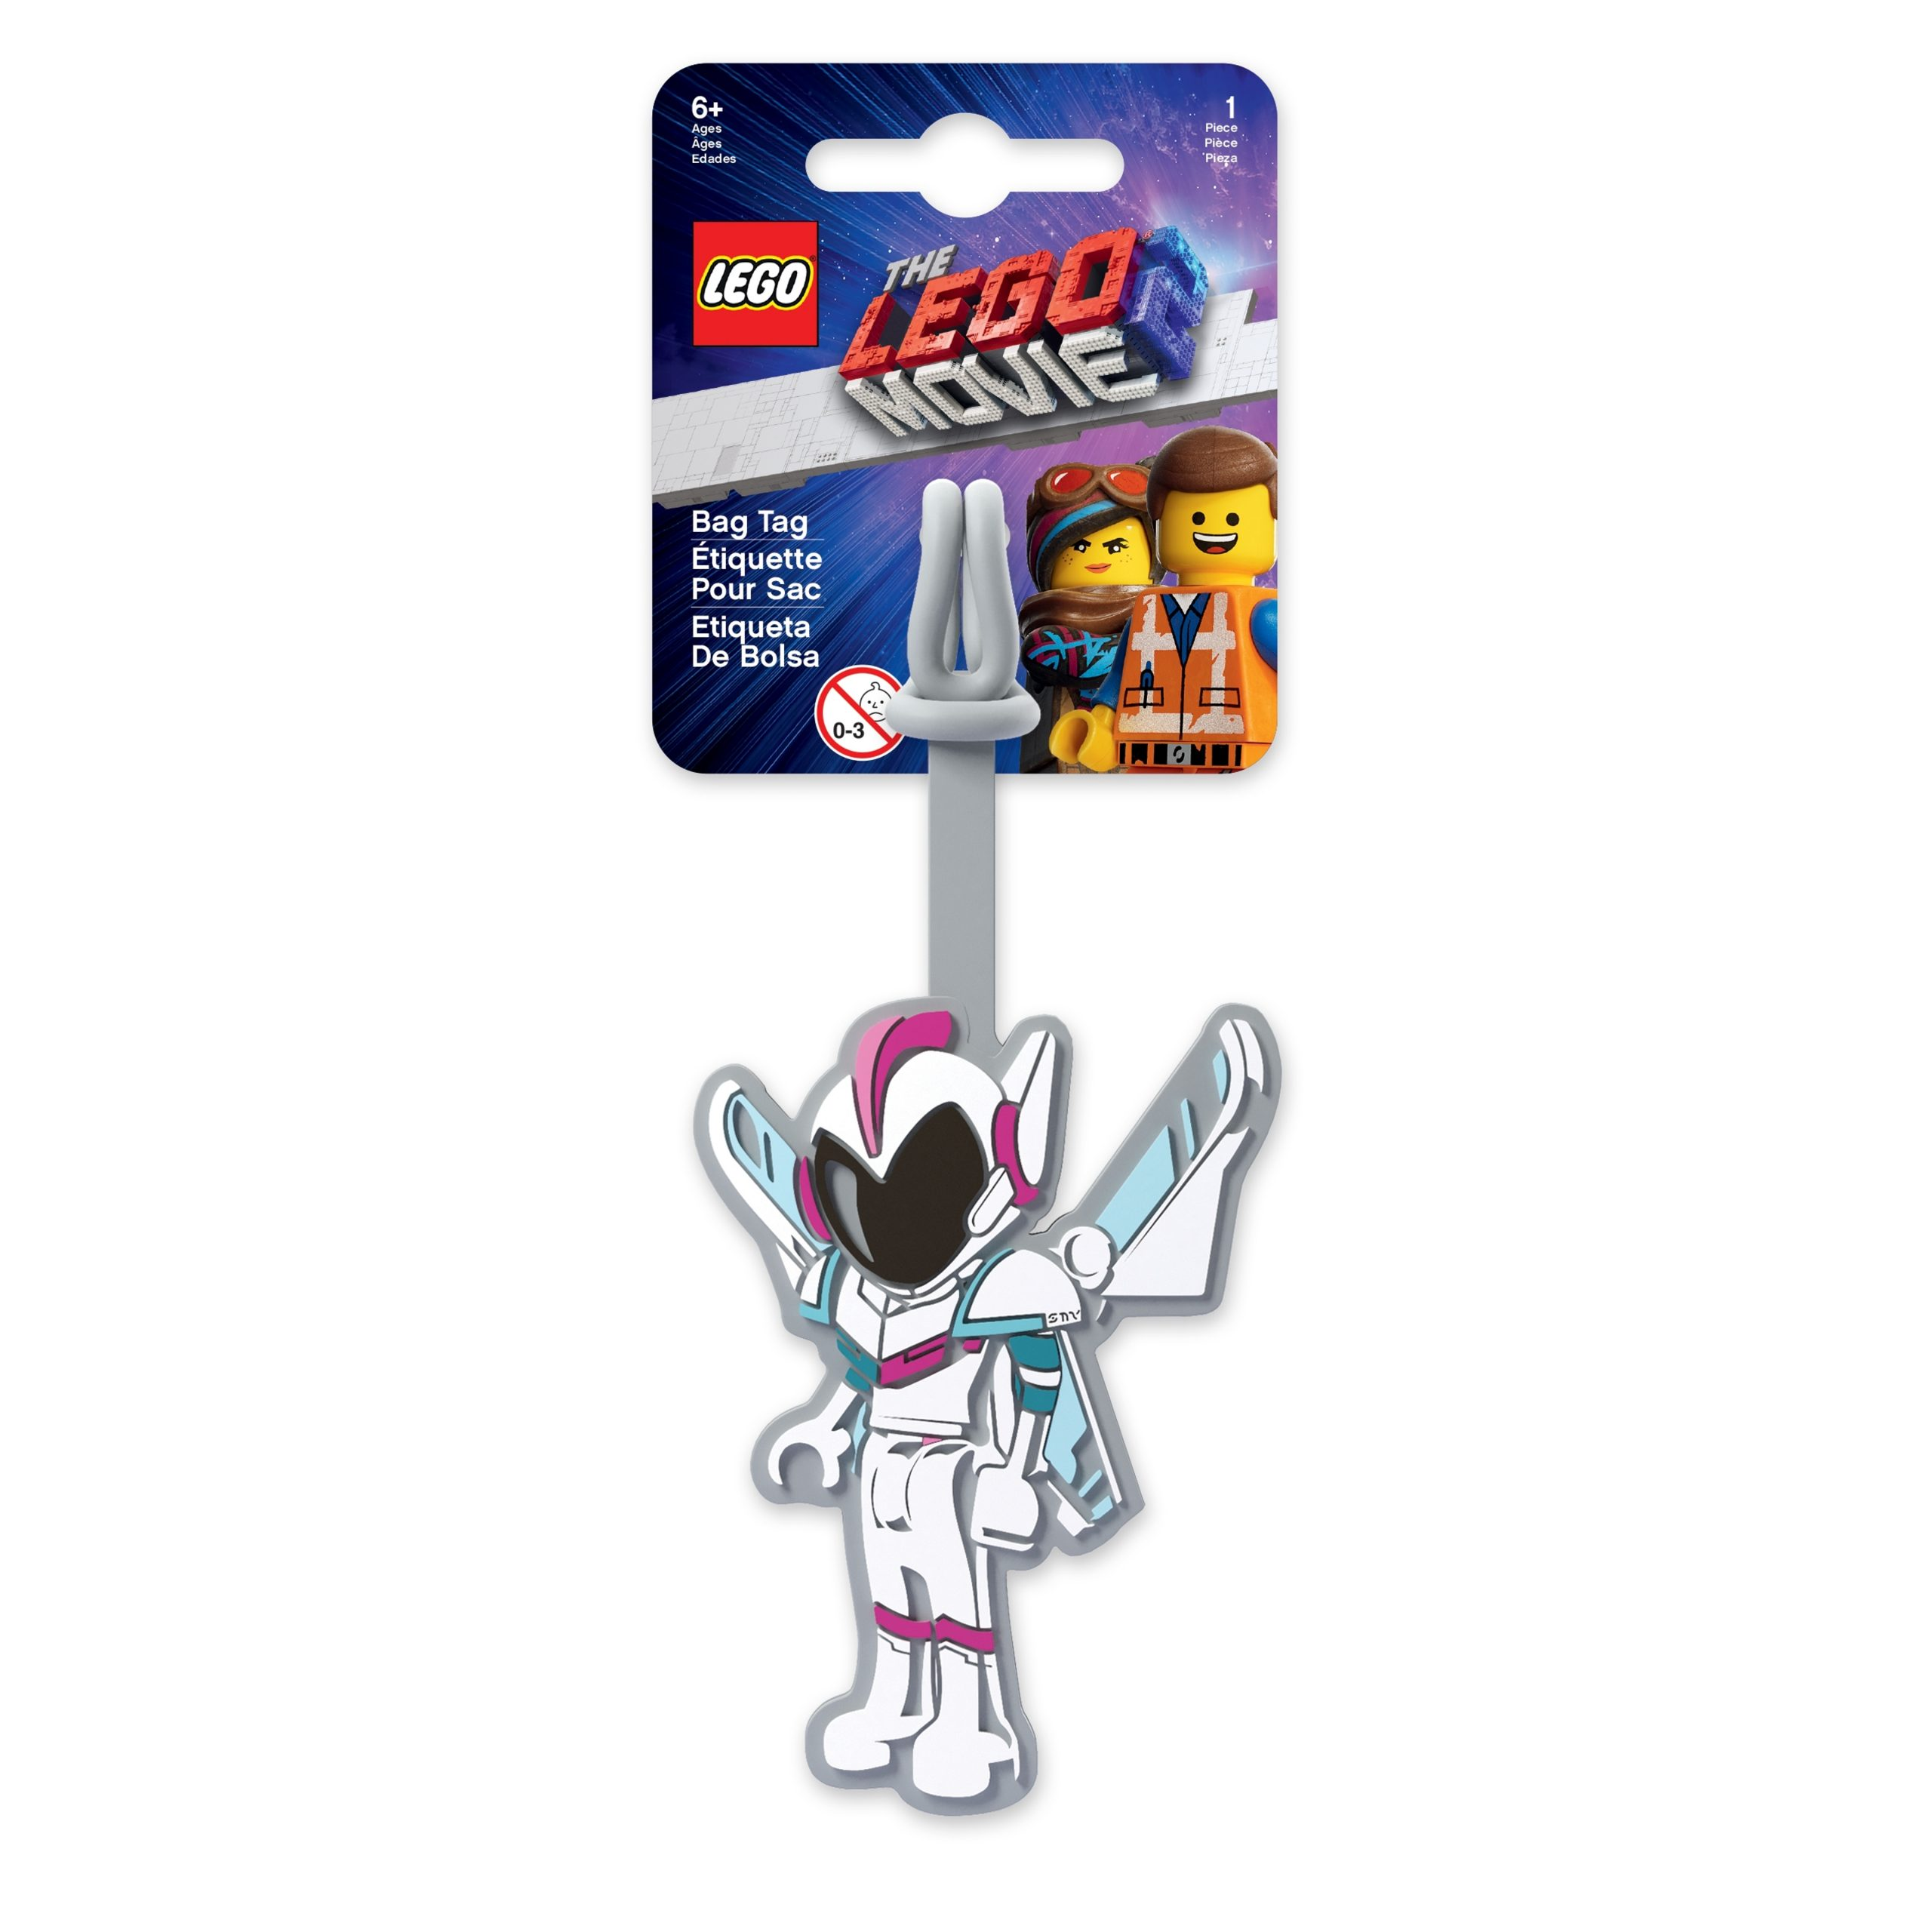 lego 5005735 movie 2 sweet mayhem luggage tag scaled